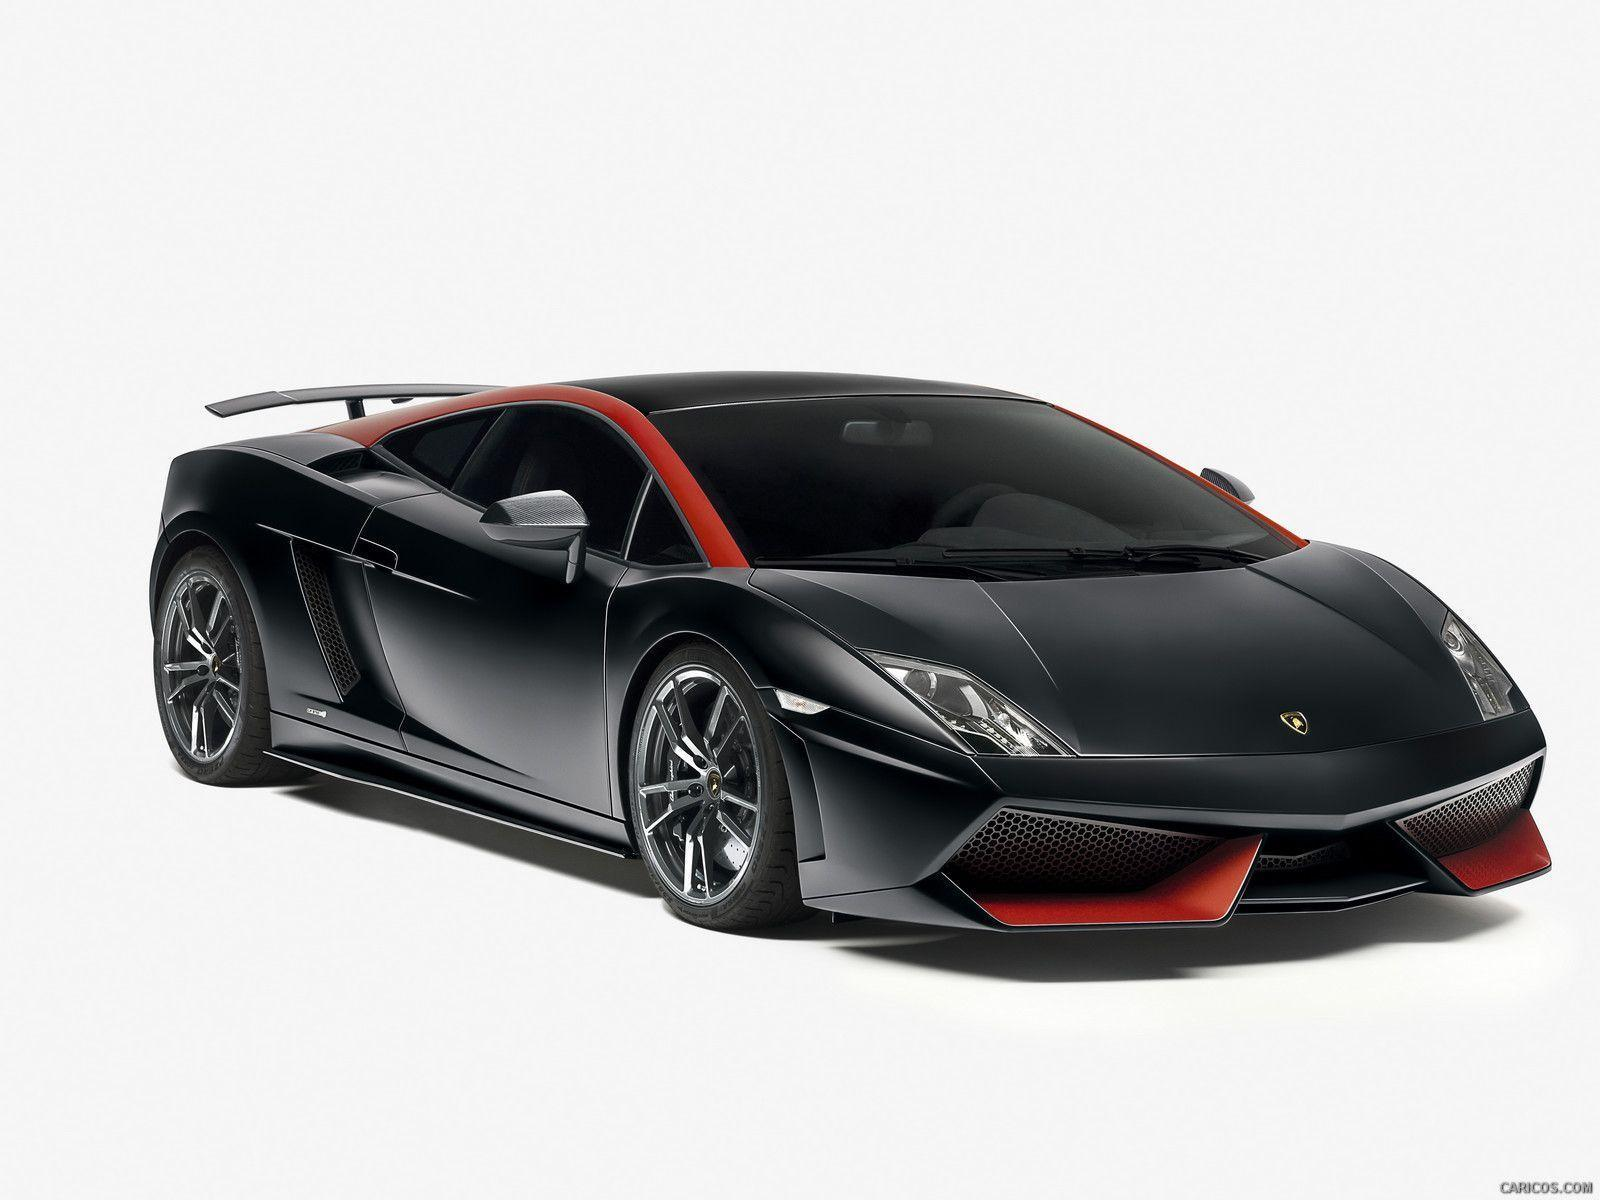 lamborghini gallardo black red car wallpapers the latest cool